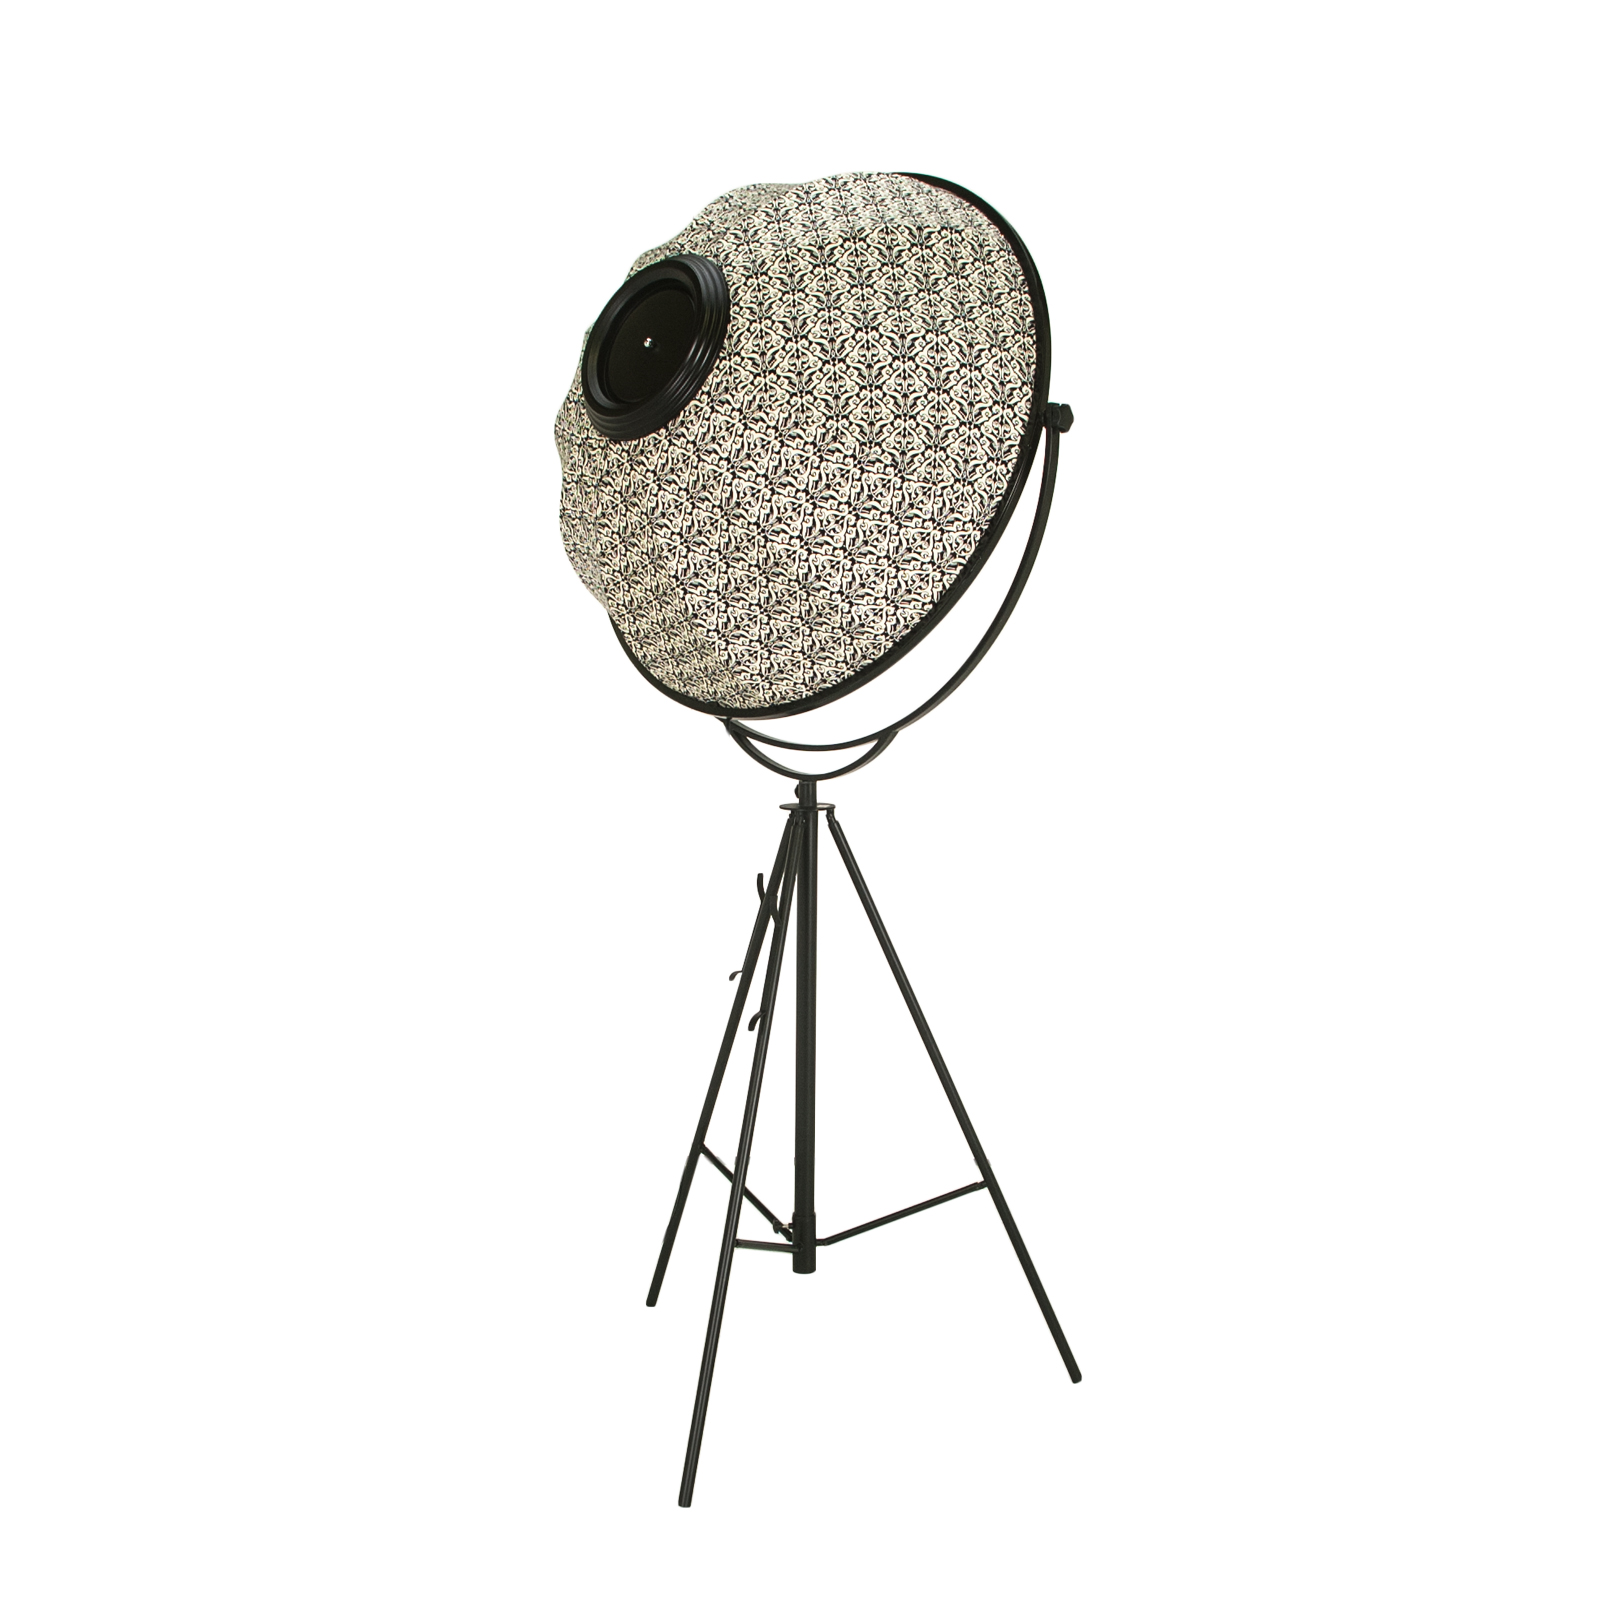 Floor Lamp Rentals | Mariano Fortuny | Event Furniture Rental